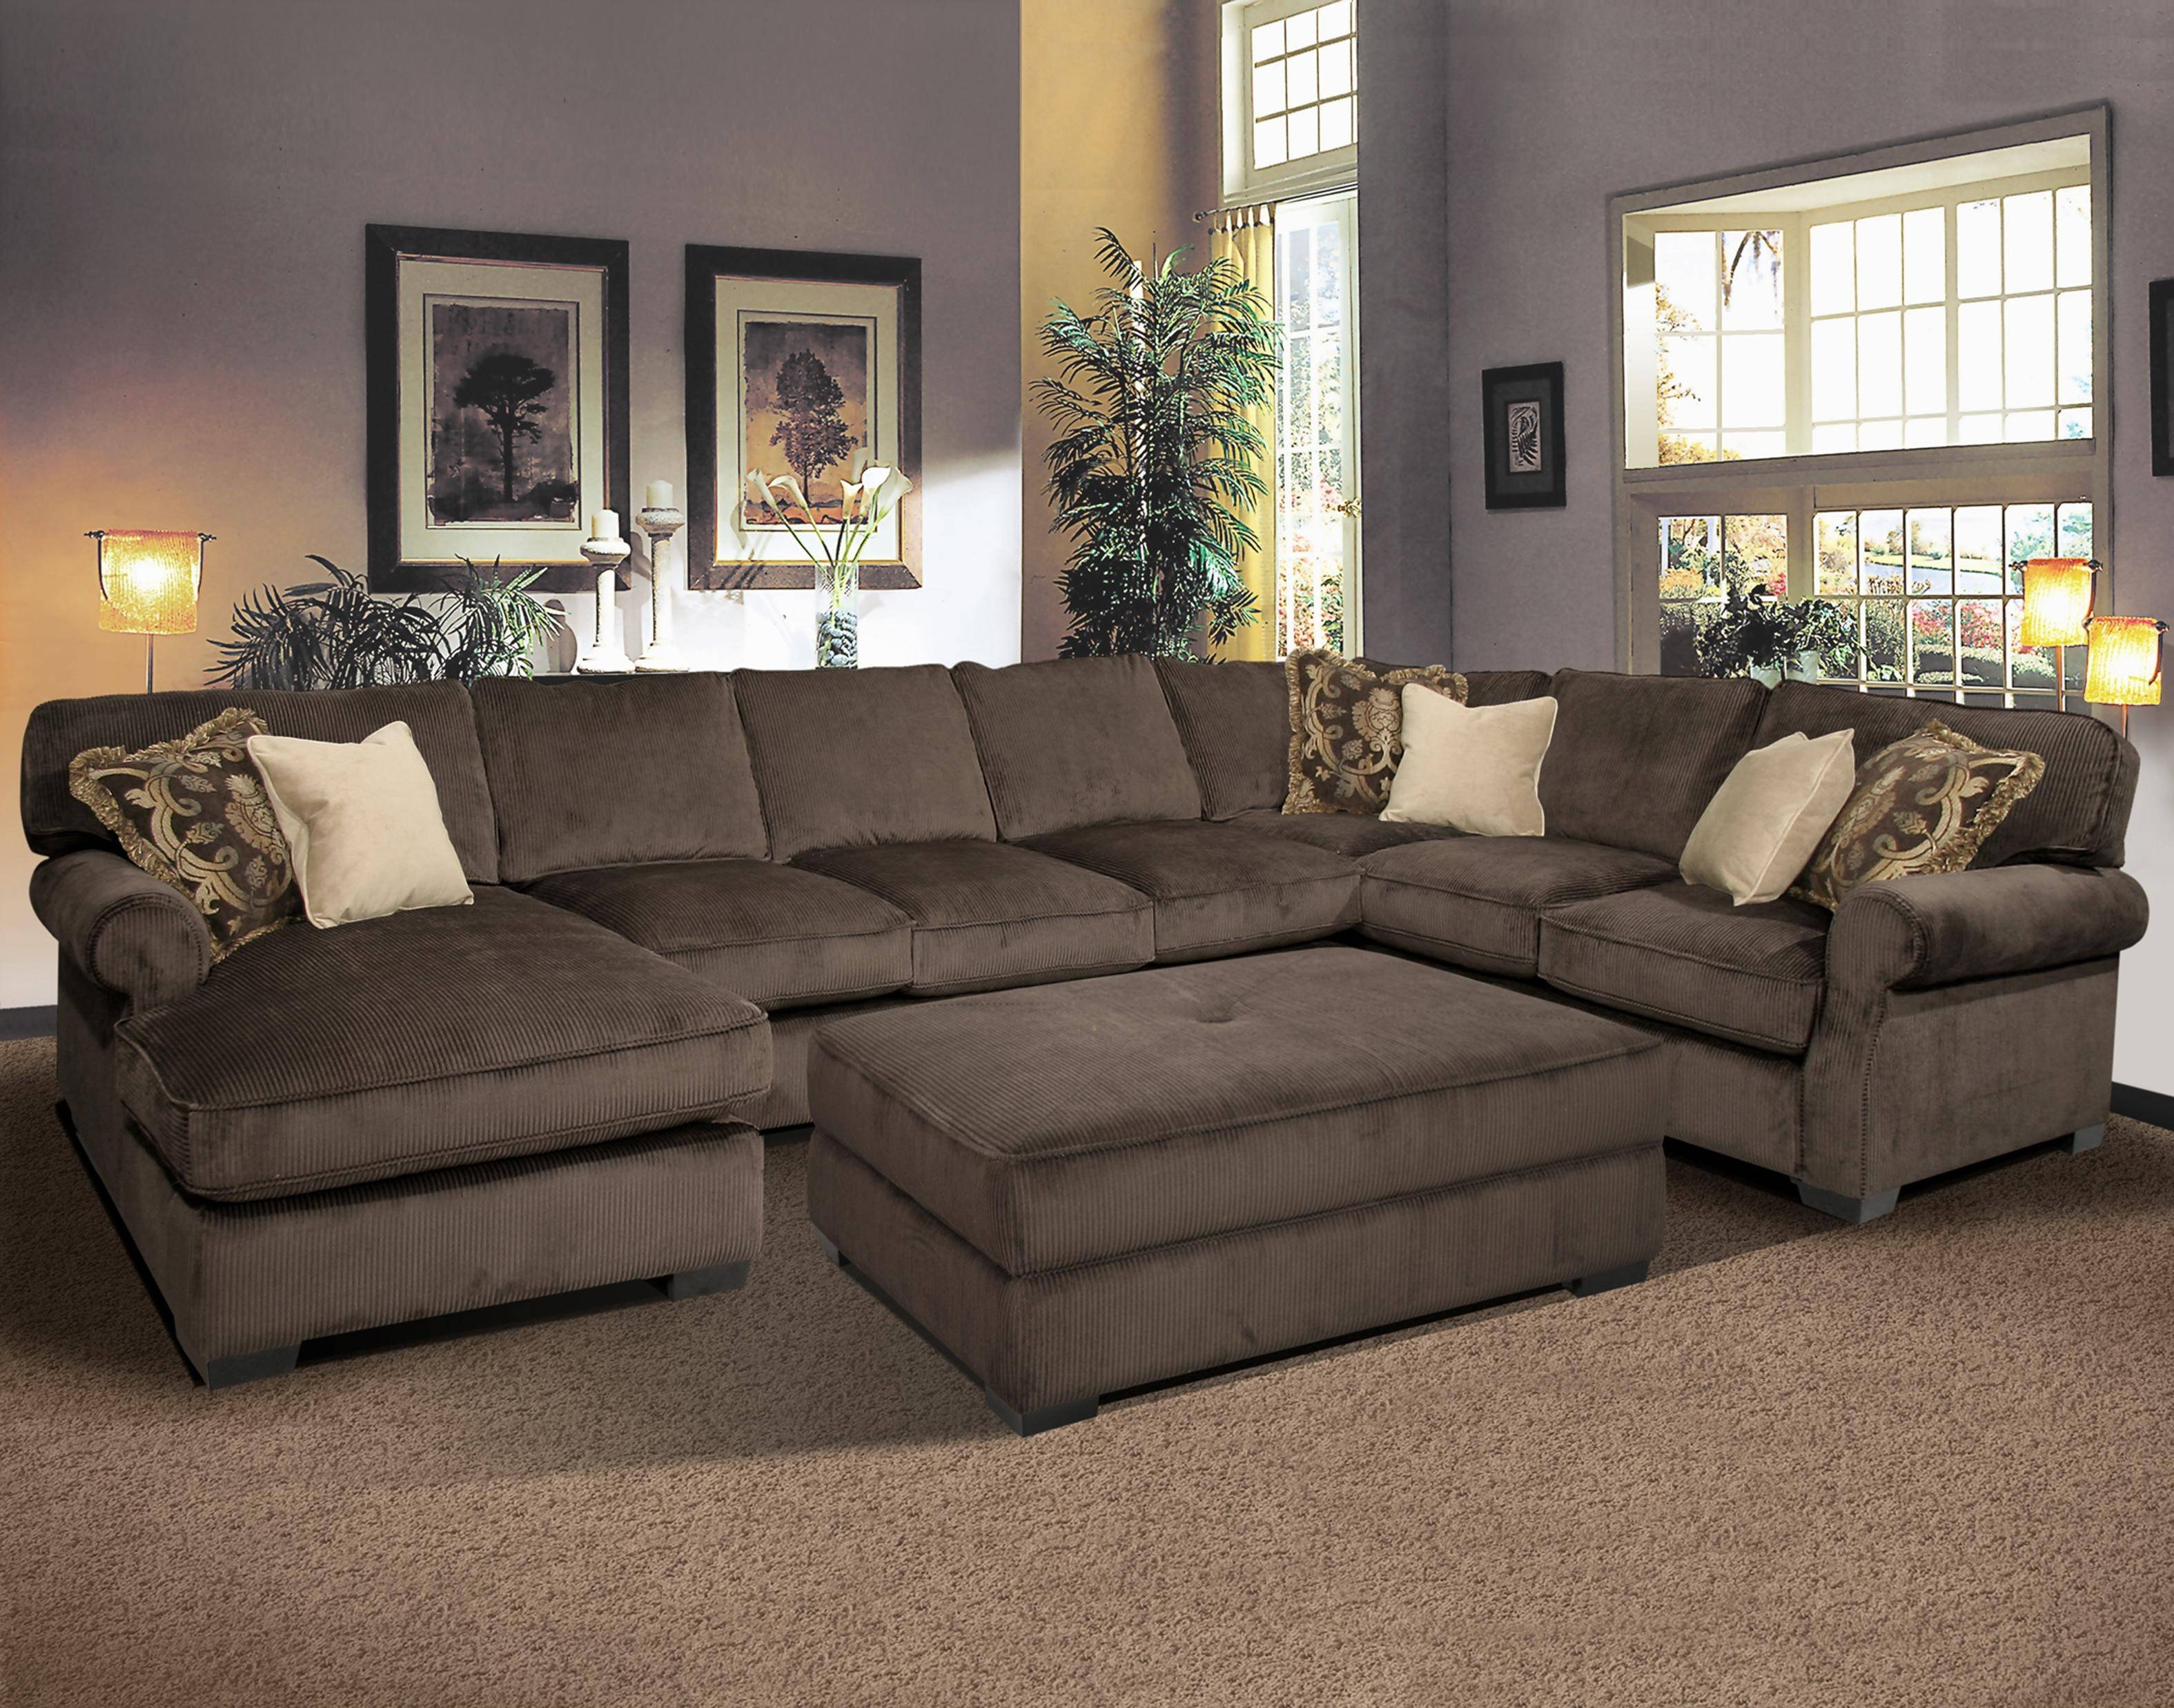 Queen Sofa Bed Sectional within Queen Sofa Sleeper Sectional Microfiber (Image 13 of 25)